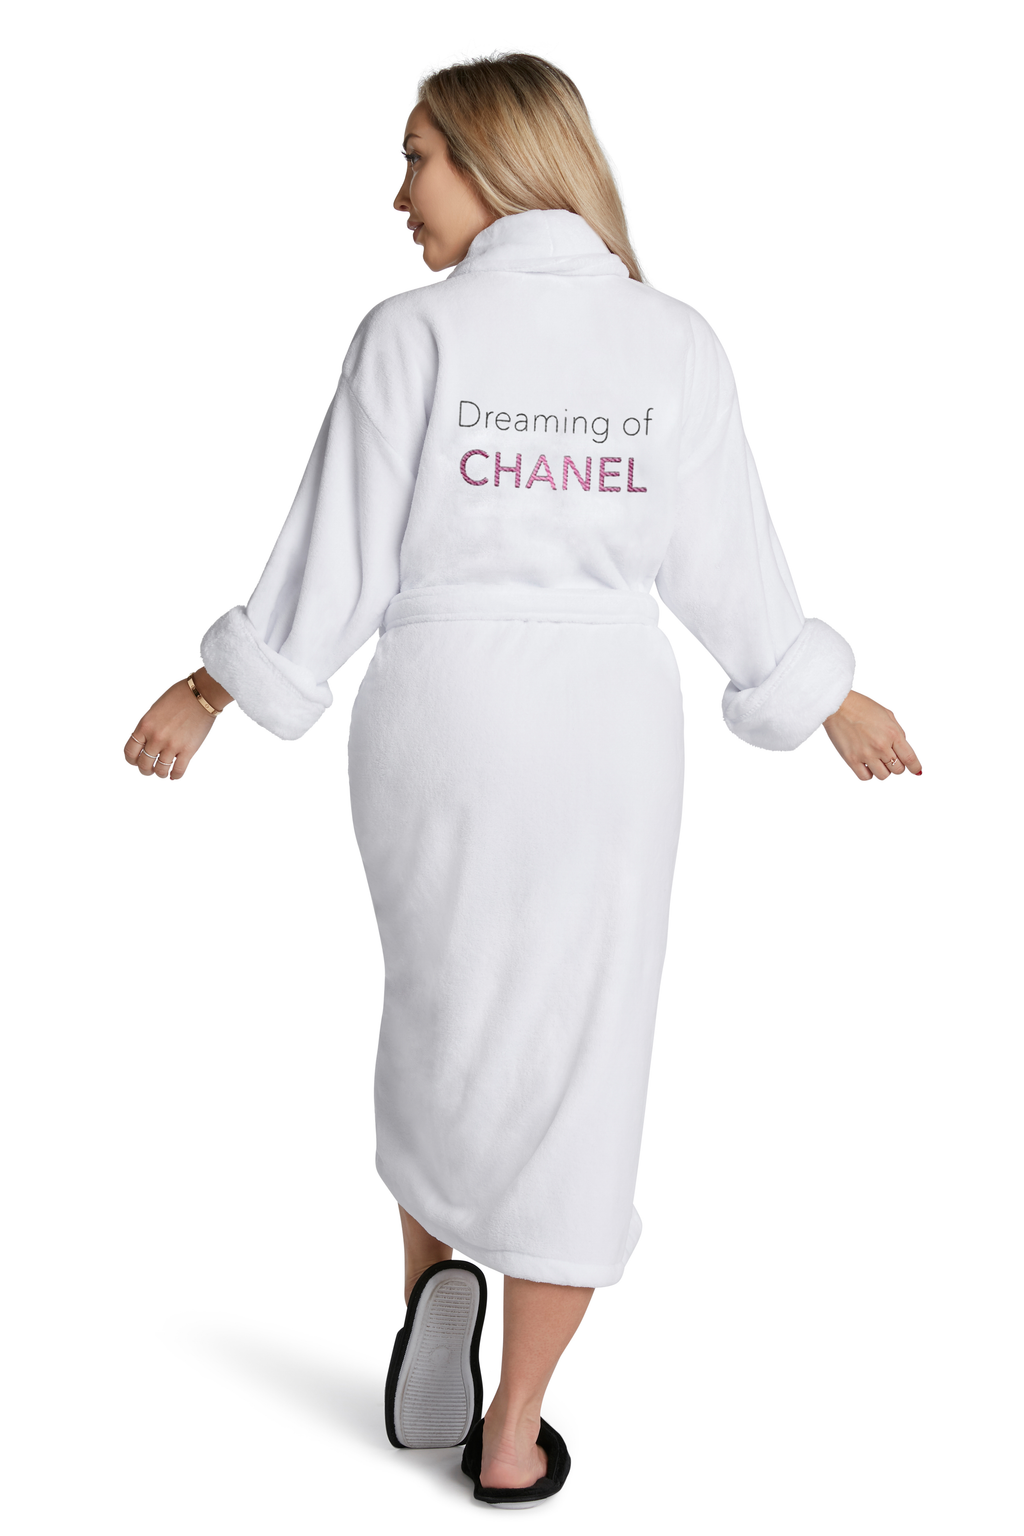 LUXE PLUSH ROBE - Dreaming Of Chanel